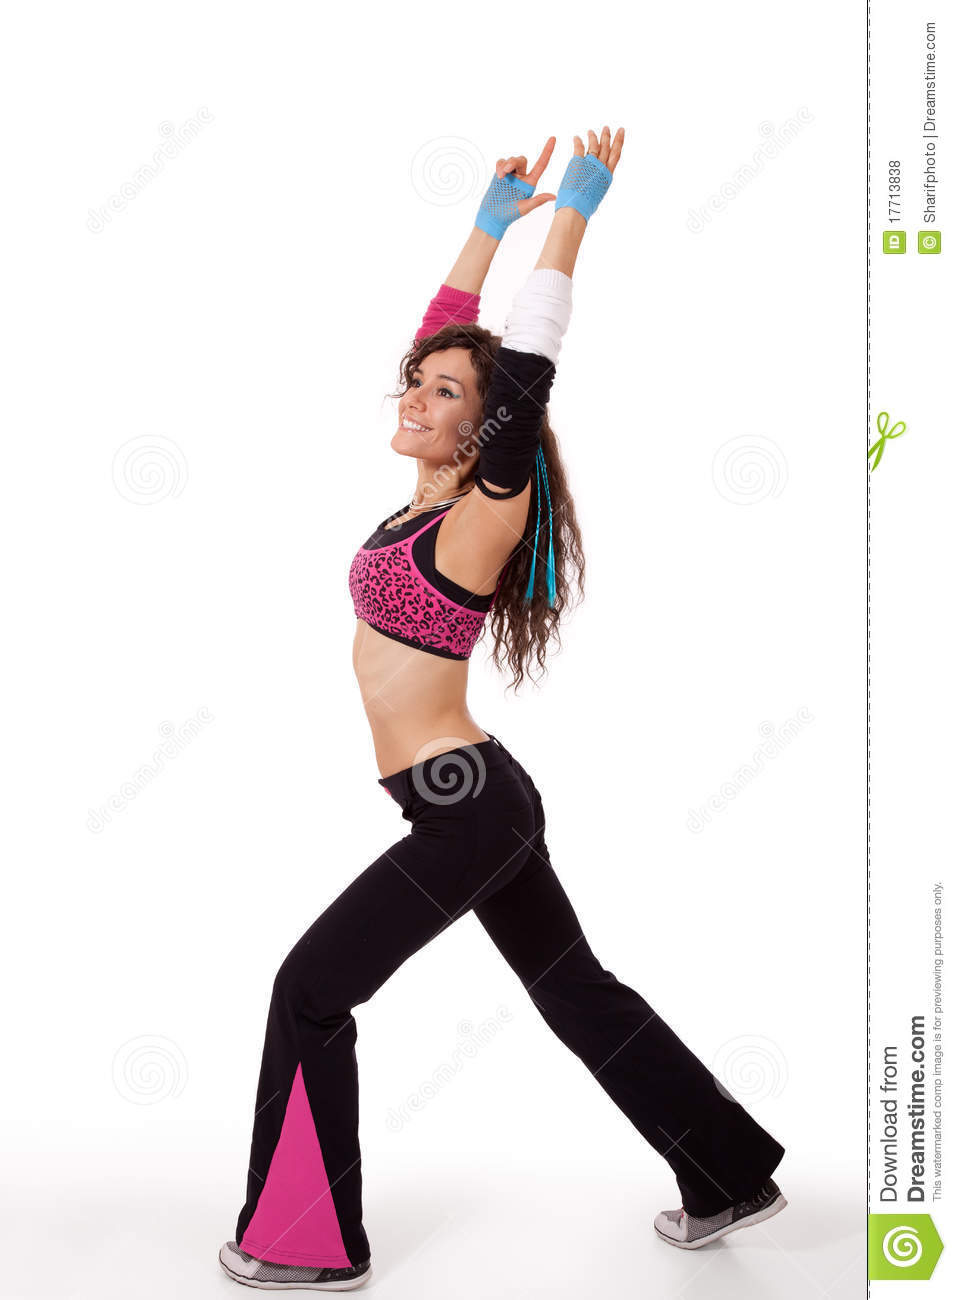 Zumba Instructor In Stretch Pose Royalty Free Stock Photos - Image ...